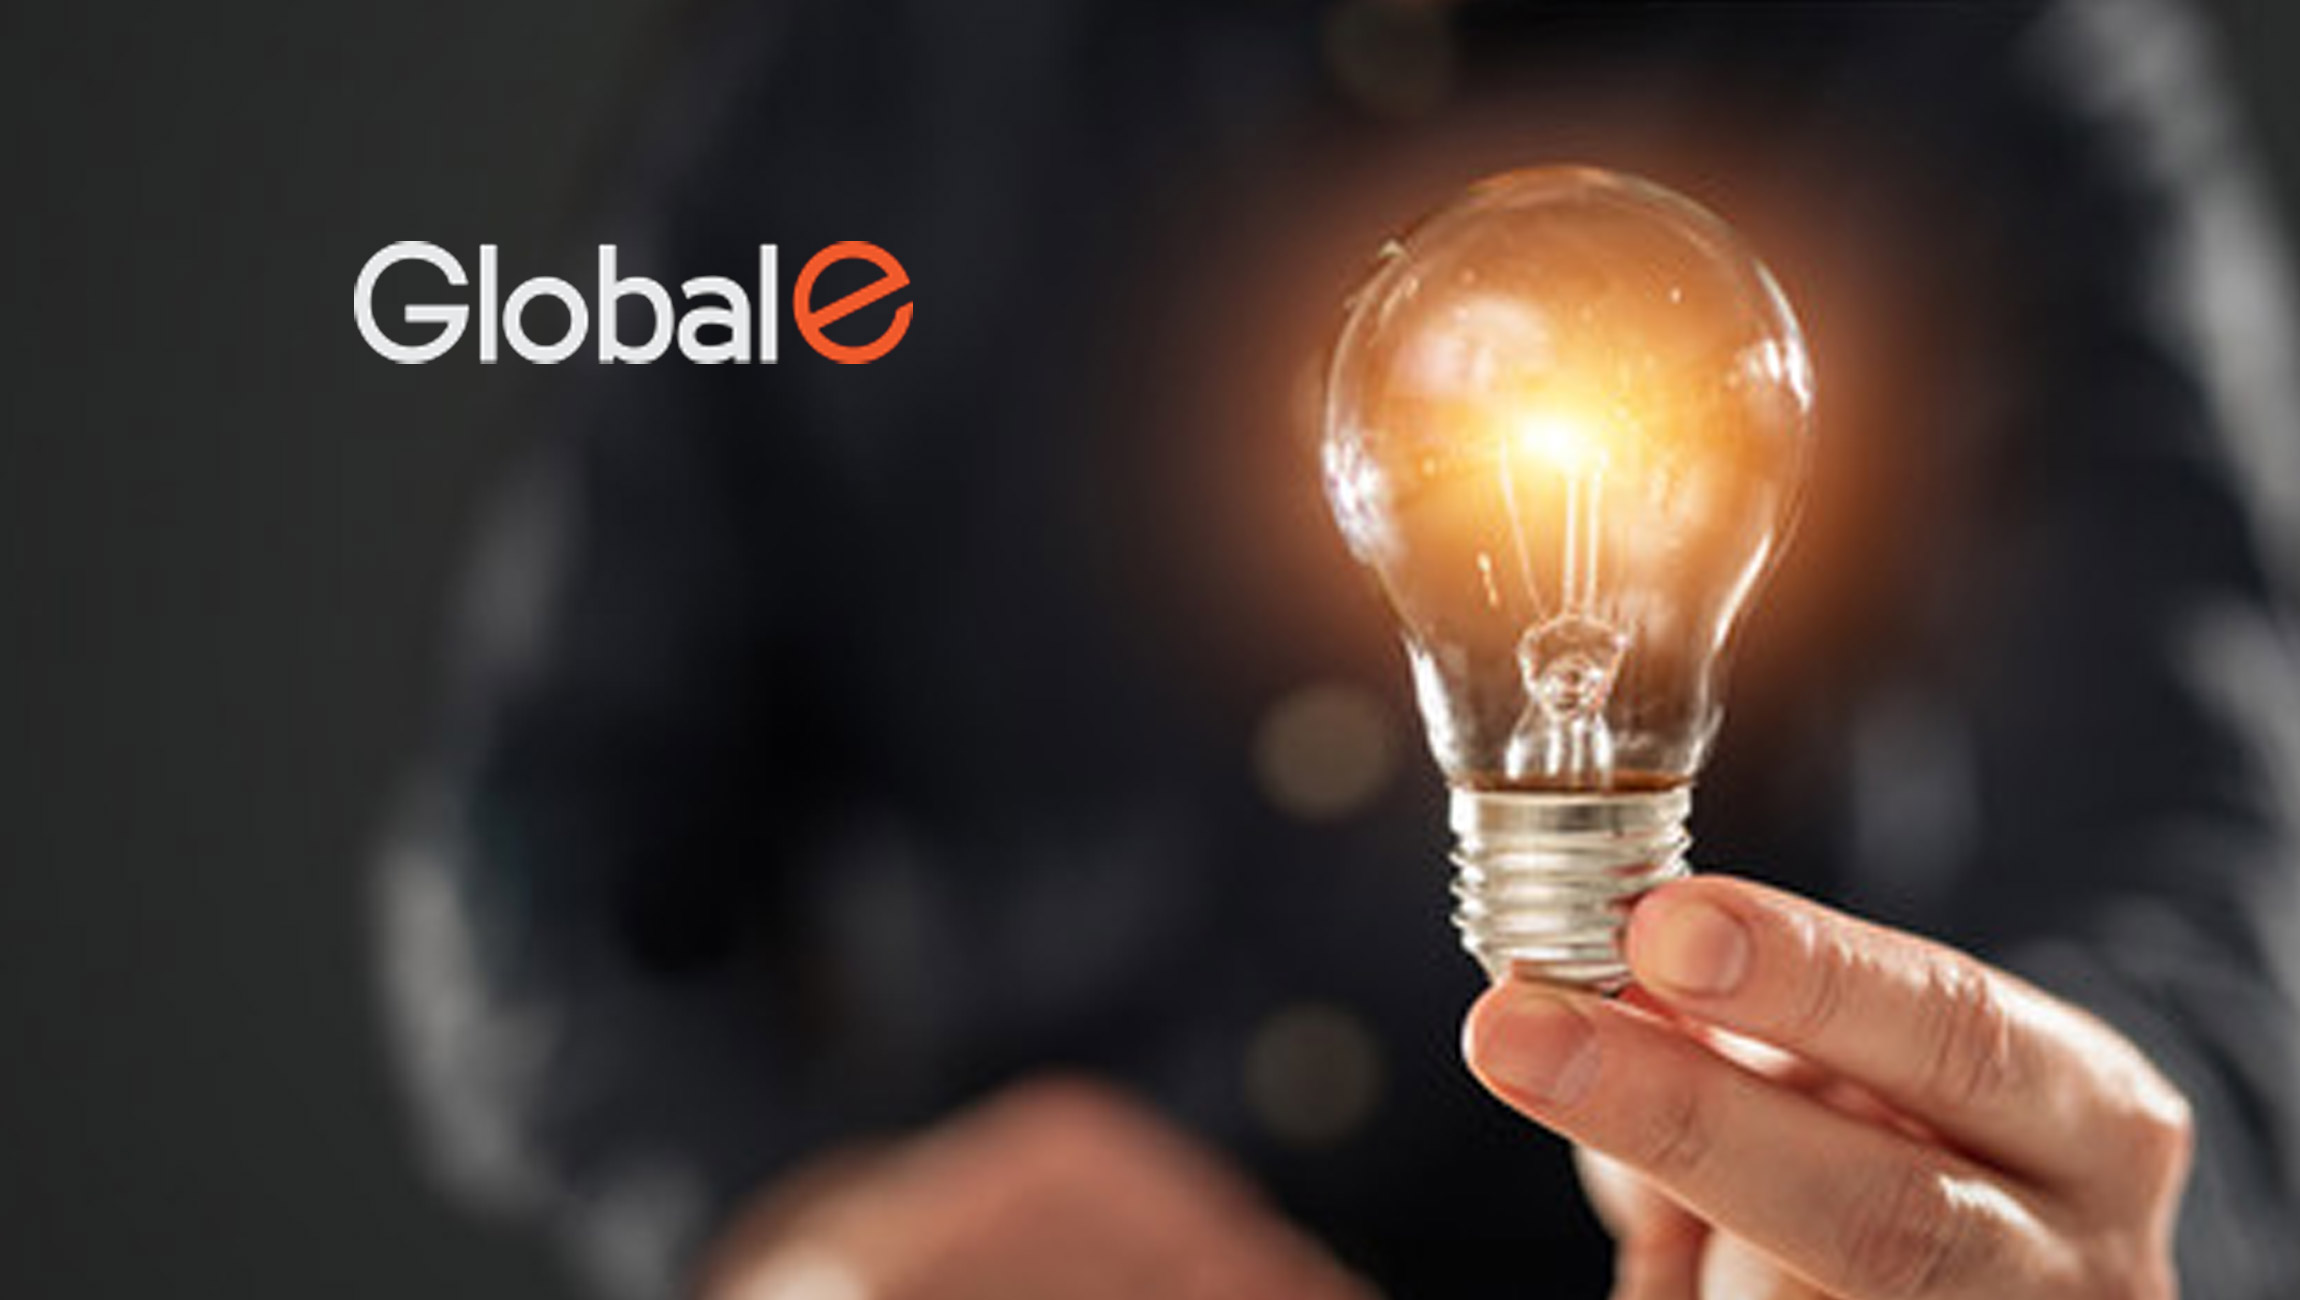 Global-e Announces Launch of Initial Public Offering